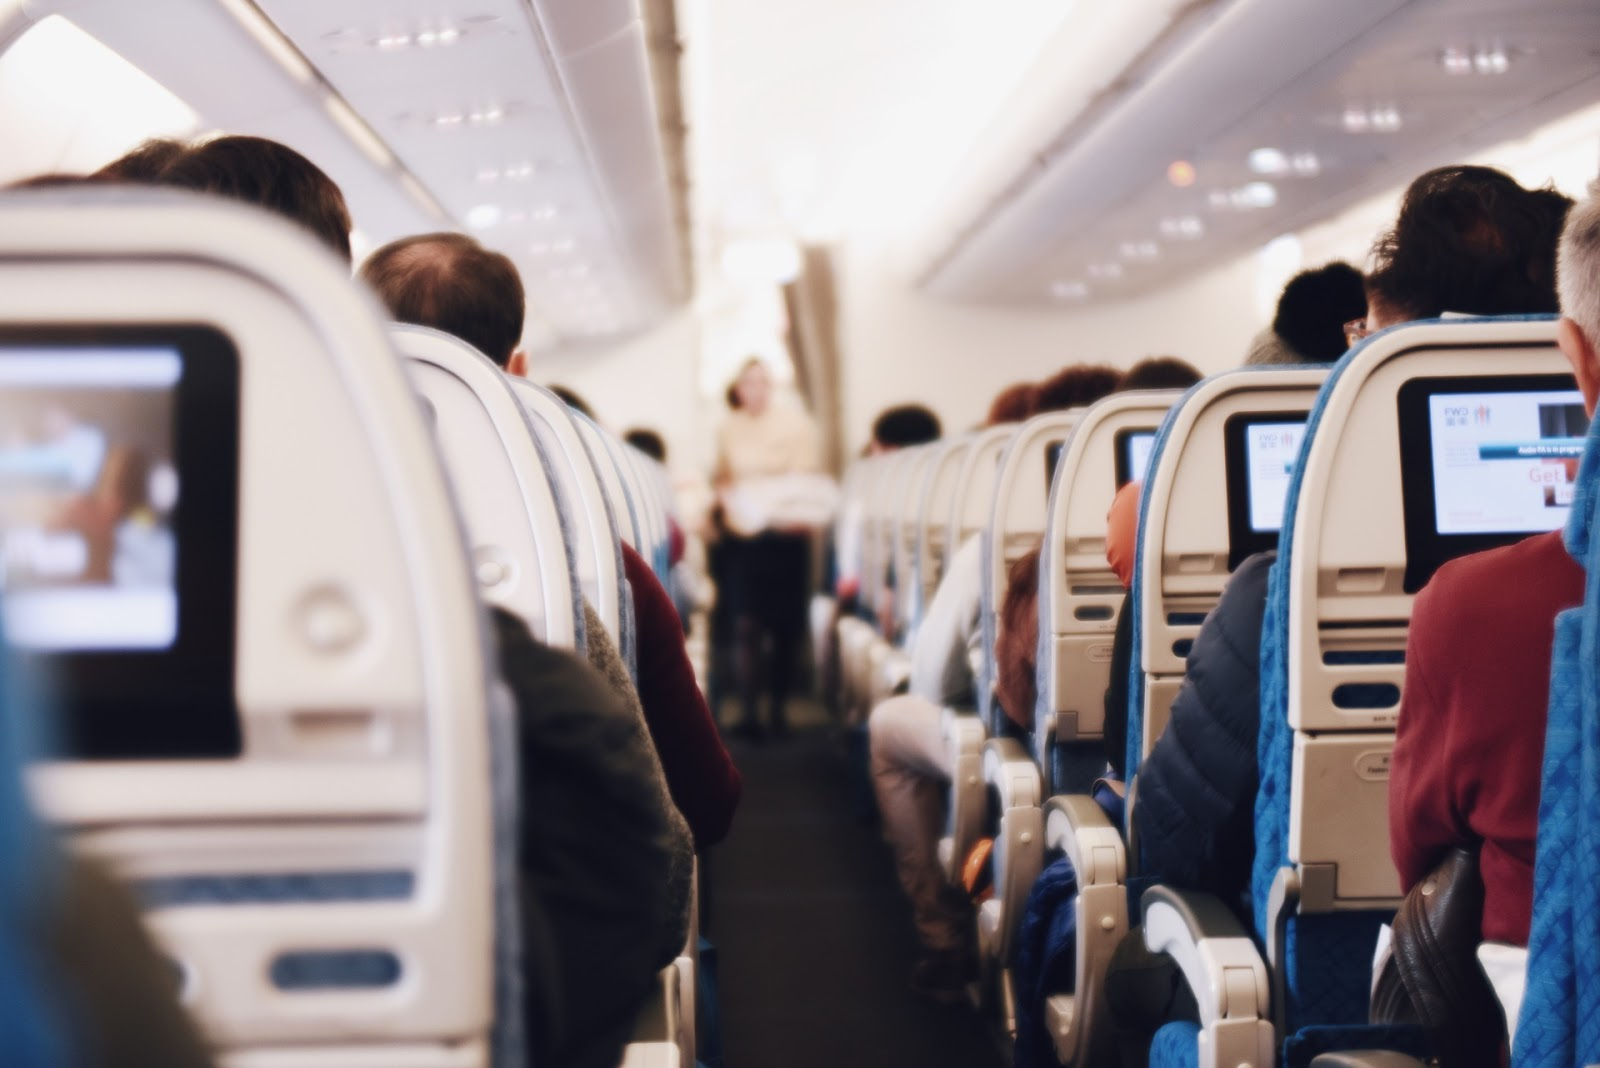 https://pixabay.com/en/indoor-airplane-airline-people-2594469/